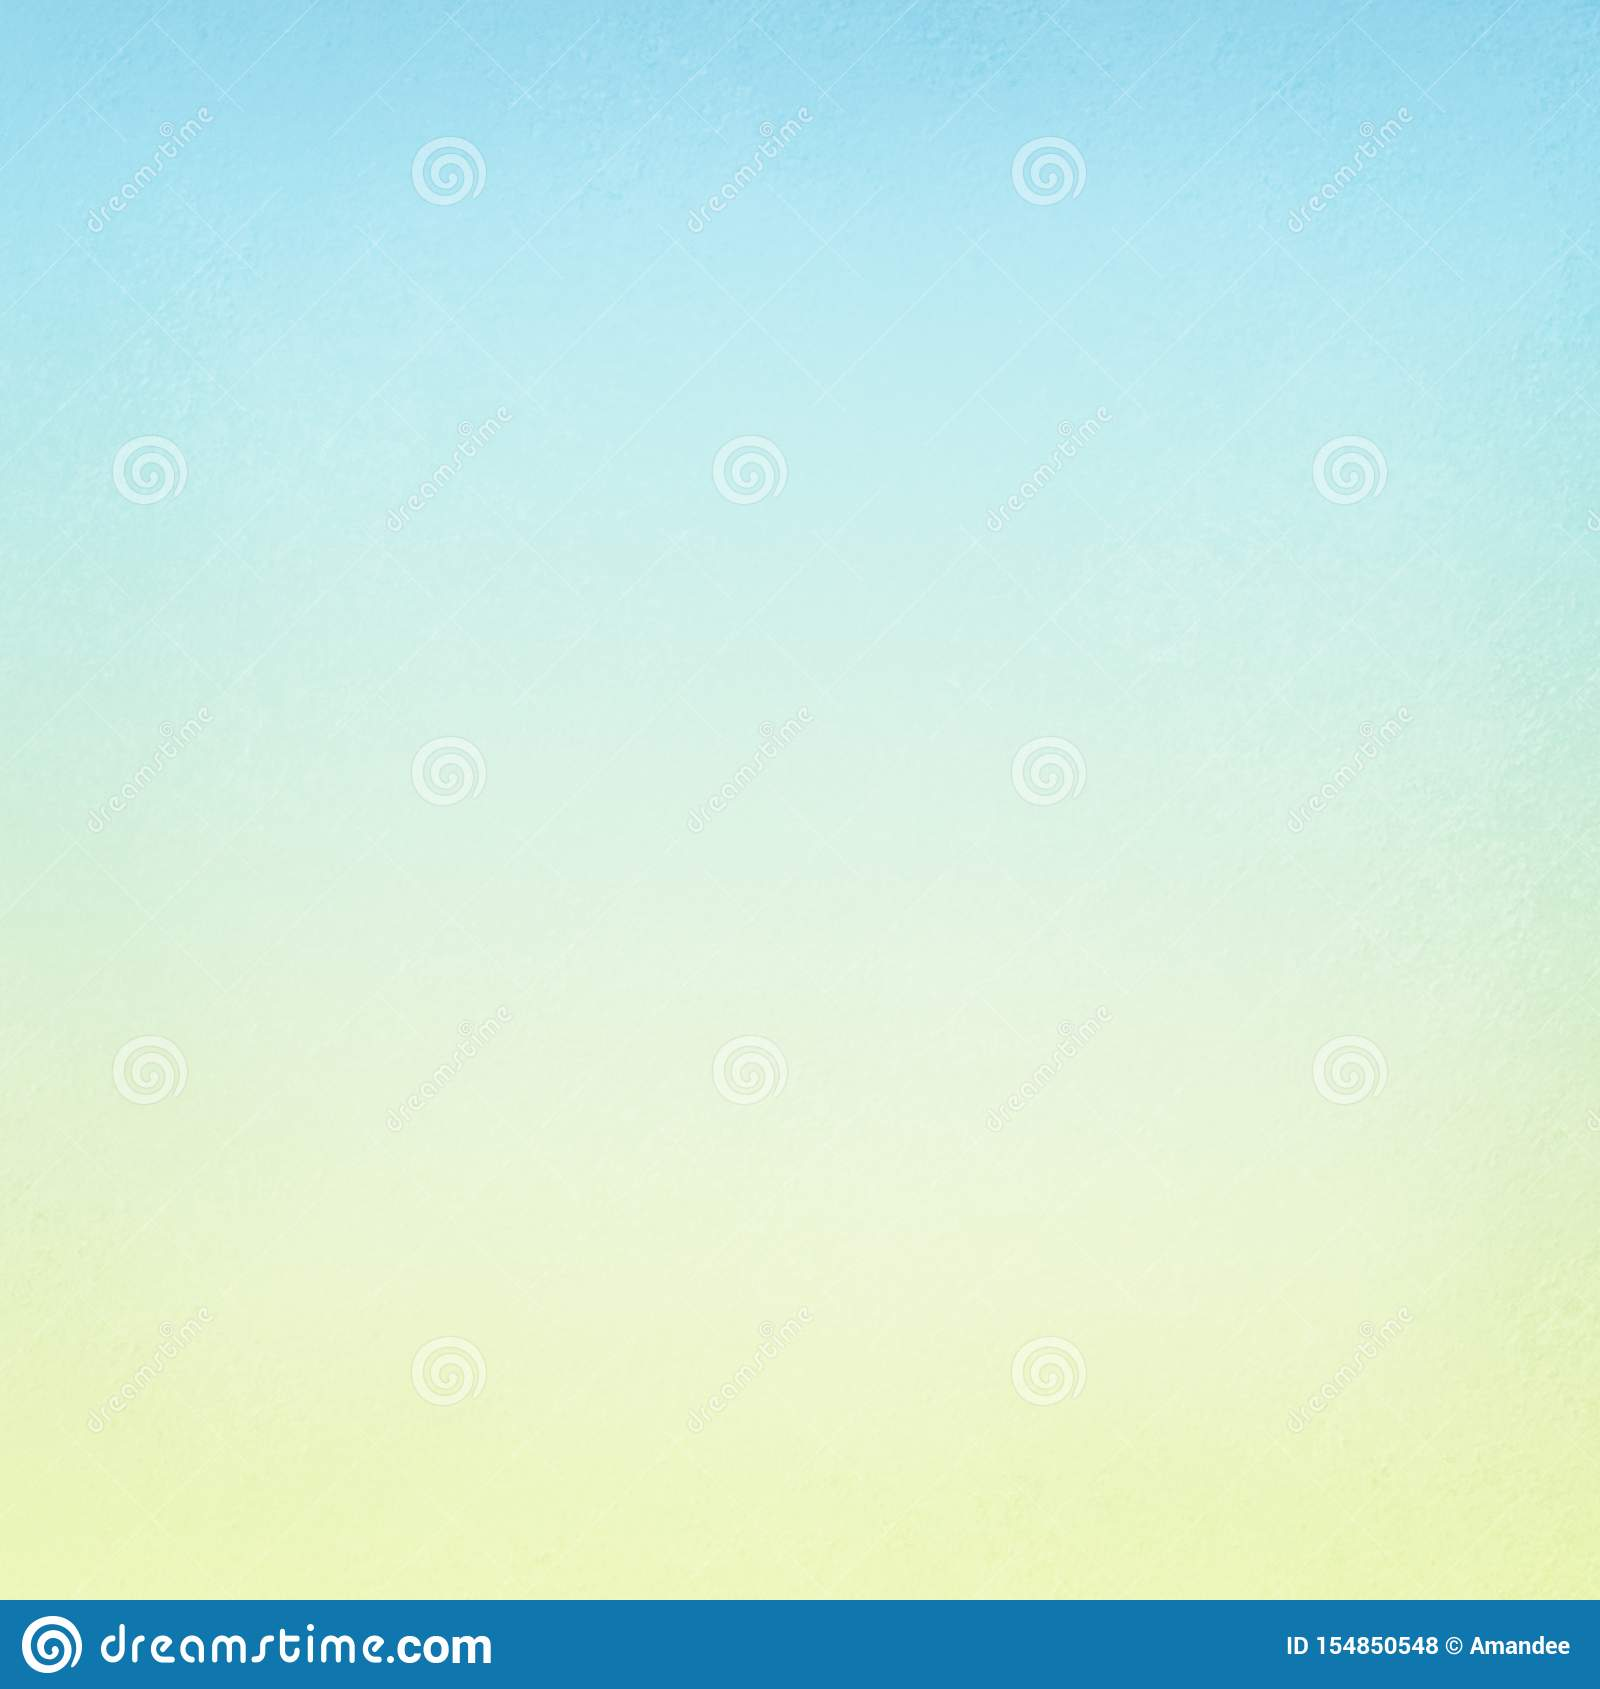 Pastel Sky Blue And Soft Yellow Blurred Background Texture